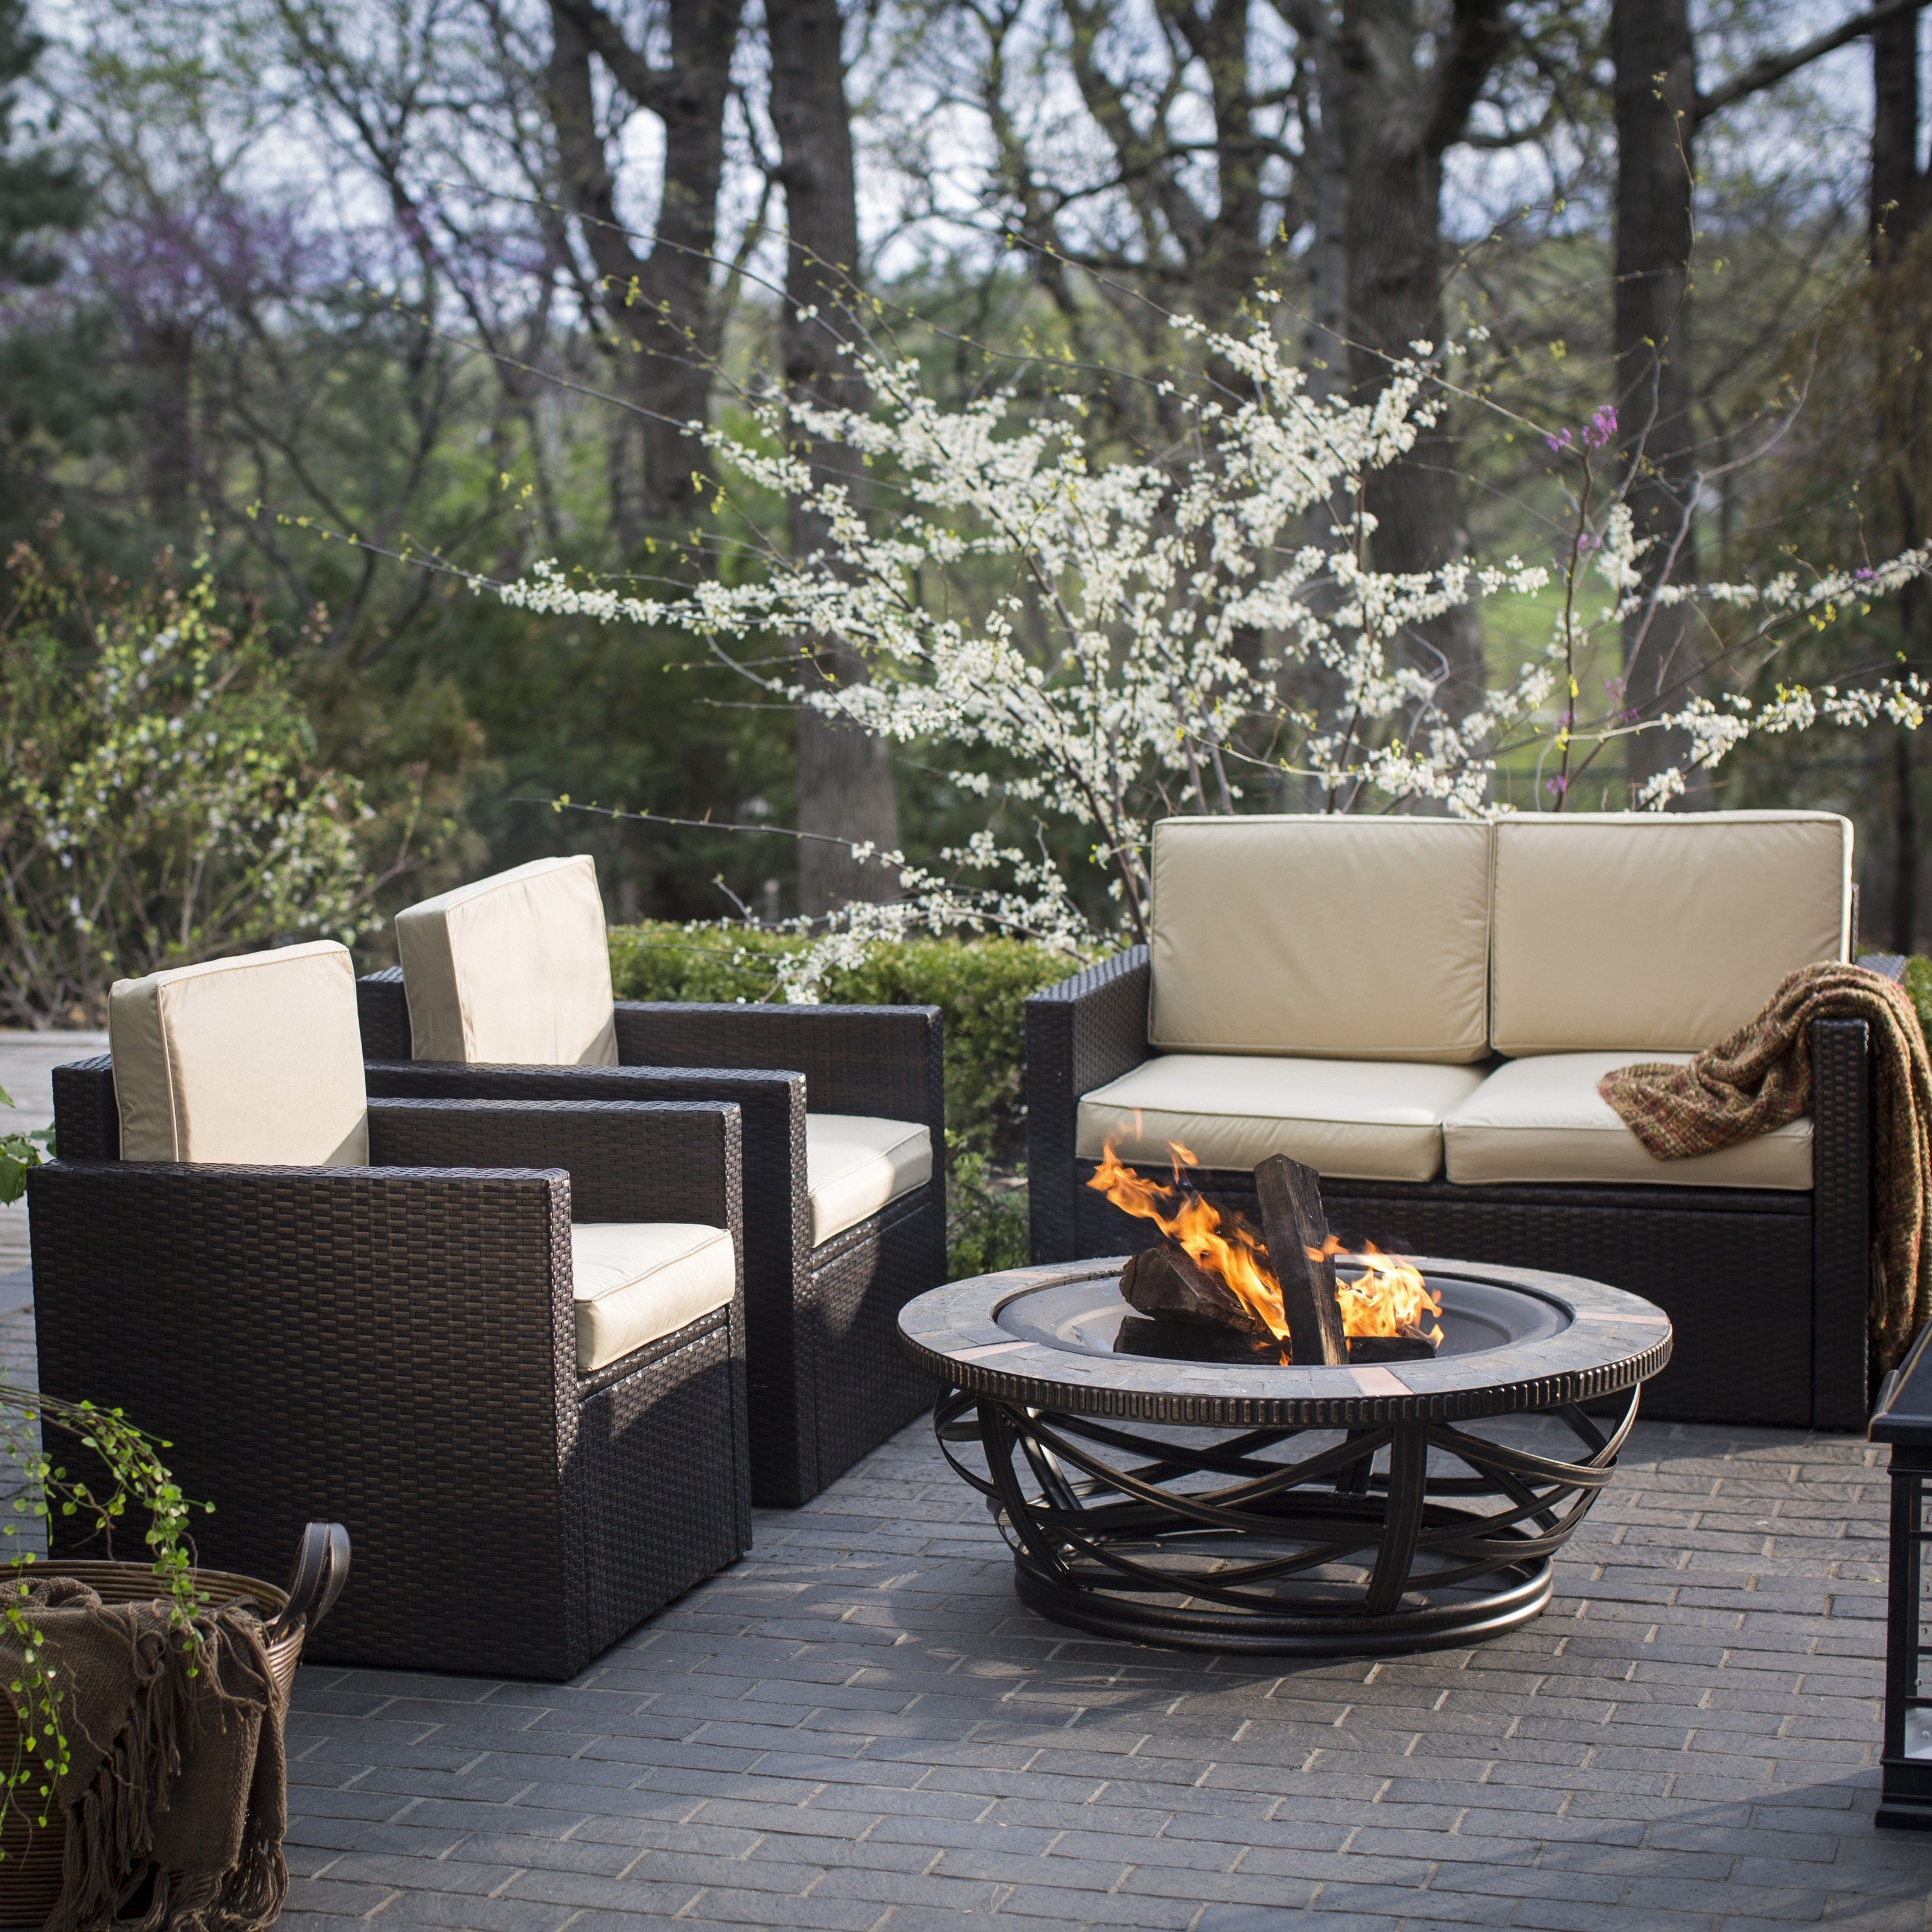 Costway 4 Pc Patio Rattan Wicker Chair Sofa Table Set Outdoor Garden Inside Well Known Walmart Patio Furniture Conversation Sets (View 13 of 15)